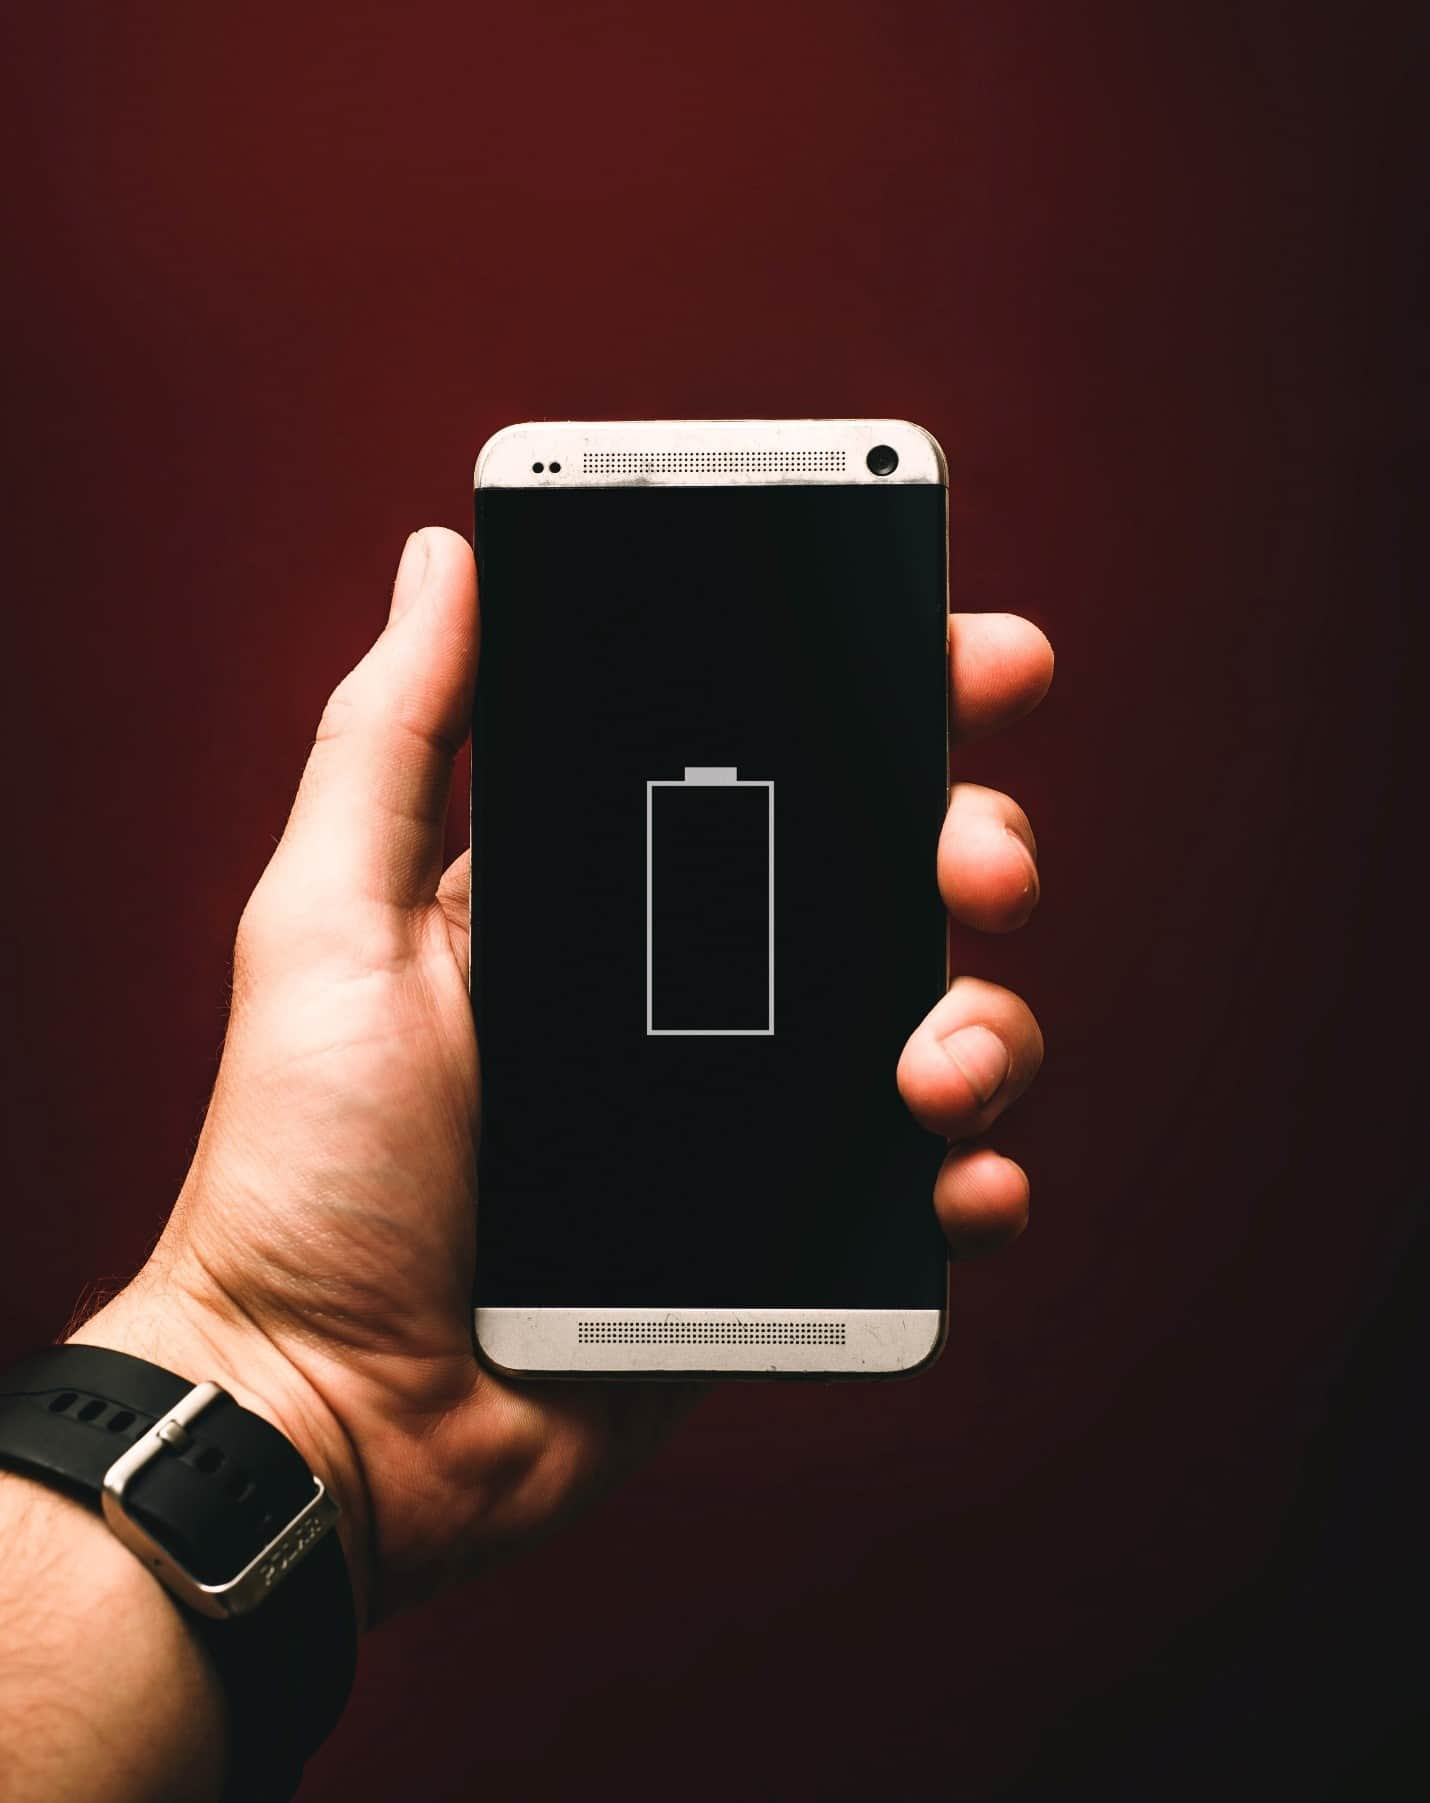 content/es-mx/images/repository/isc/2020/9910/prolong-your-smartphone-battery-lifespan-1.jpg